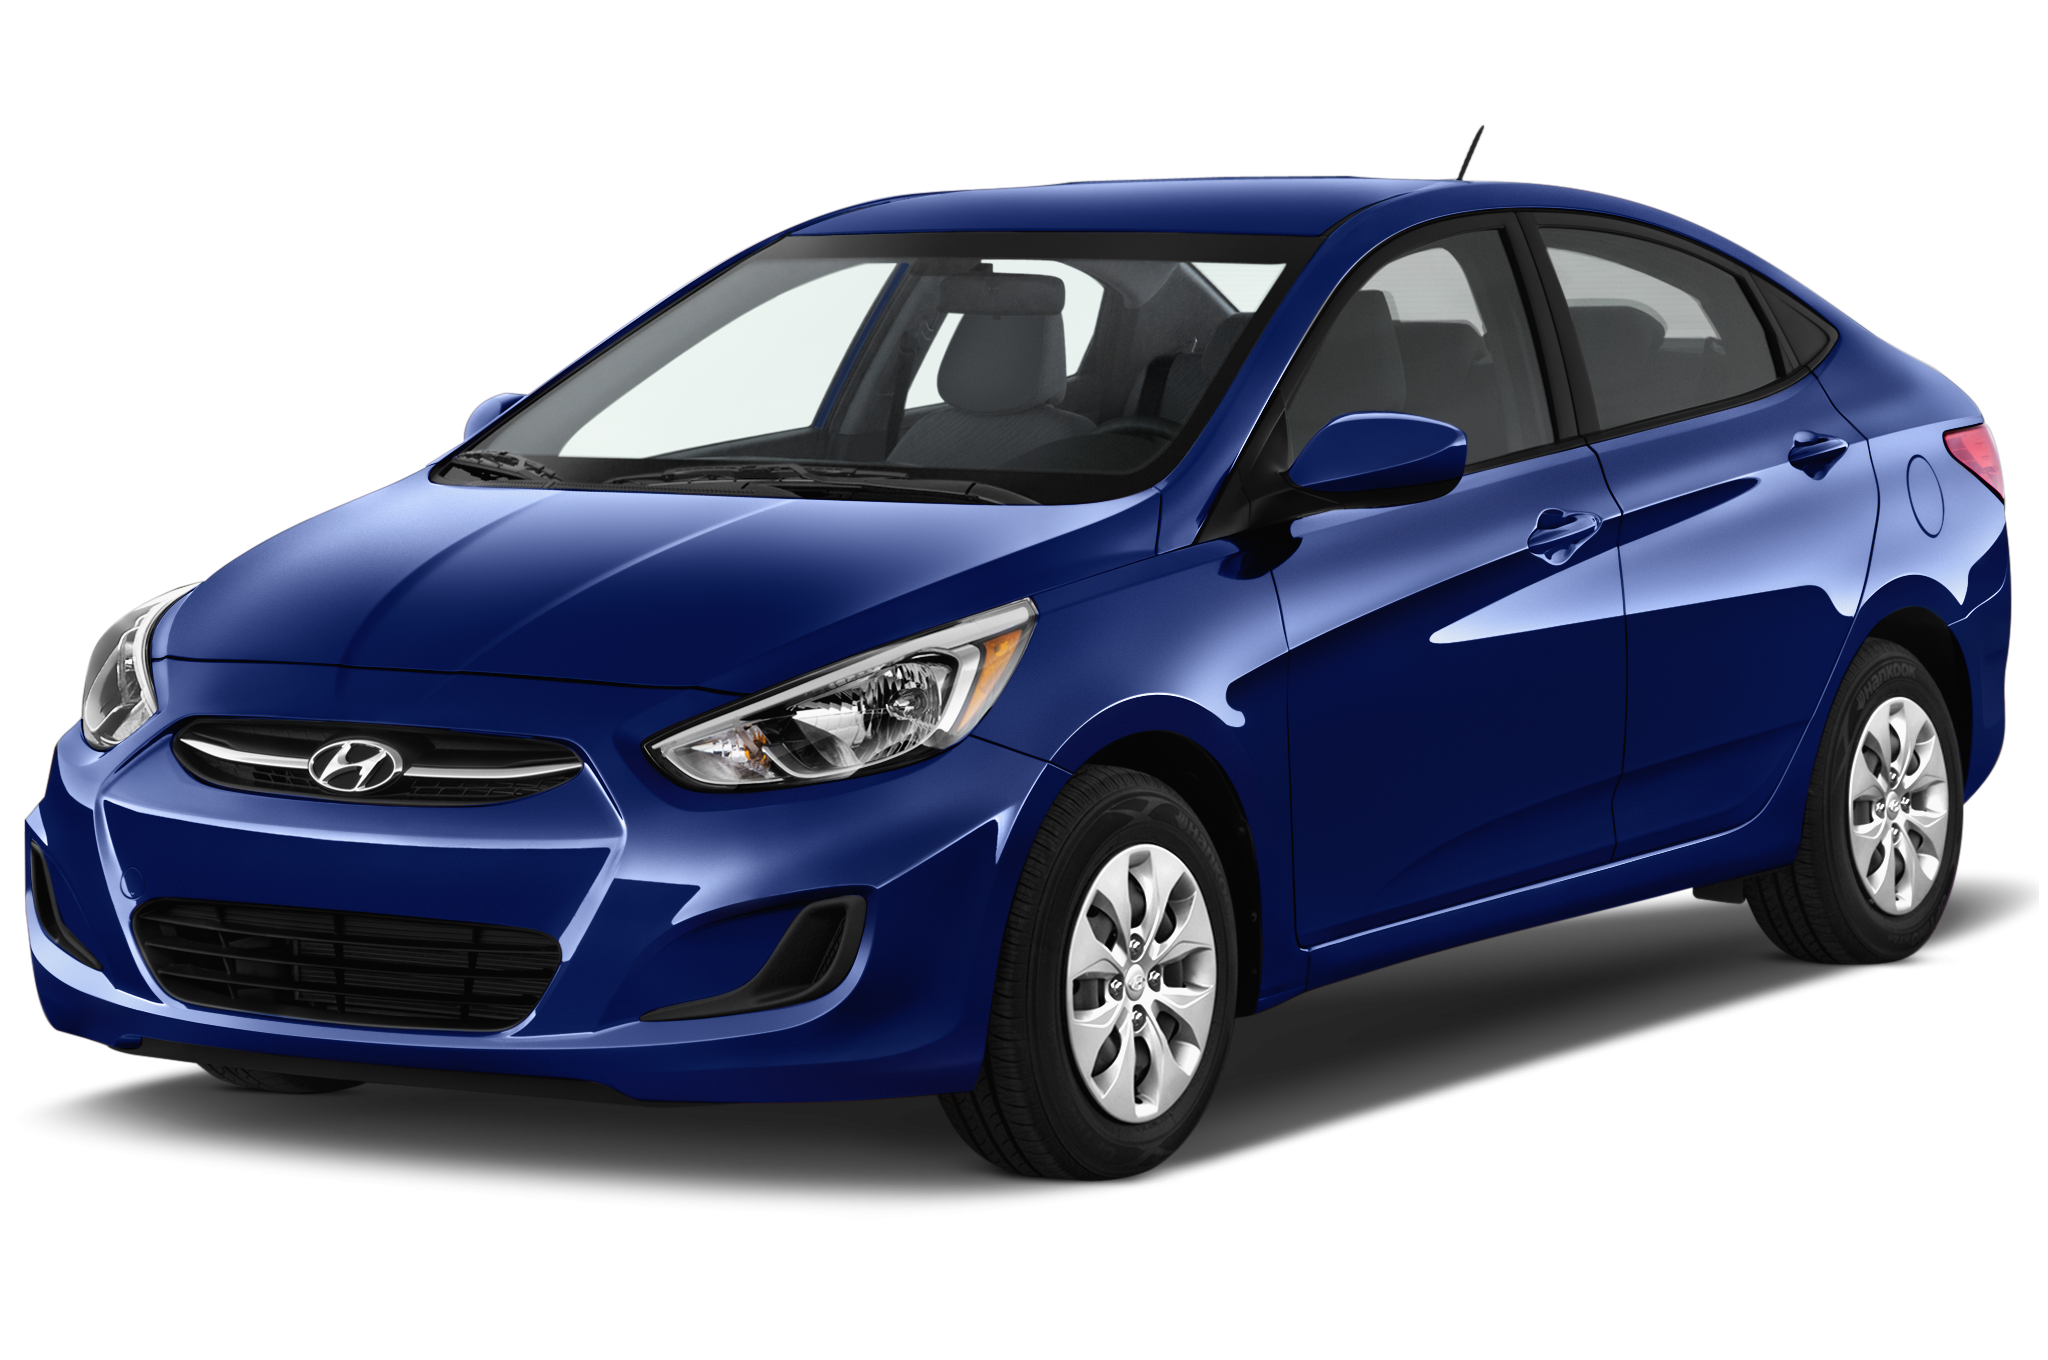 Rental car Hyundai Accent cheap